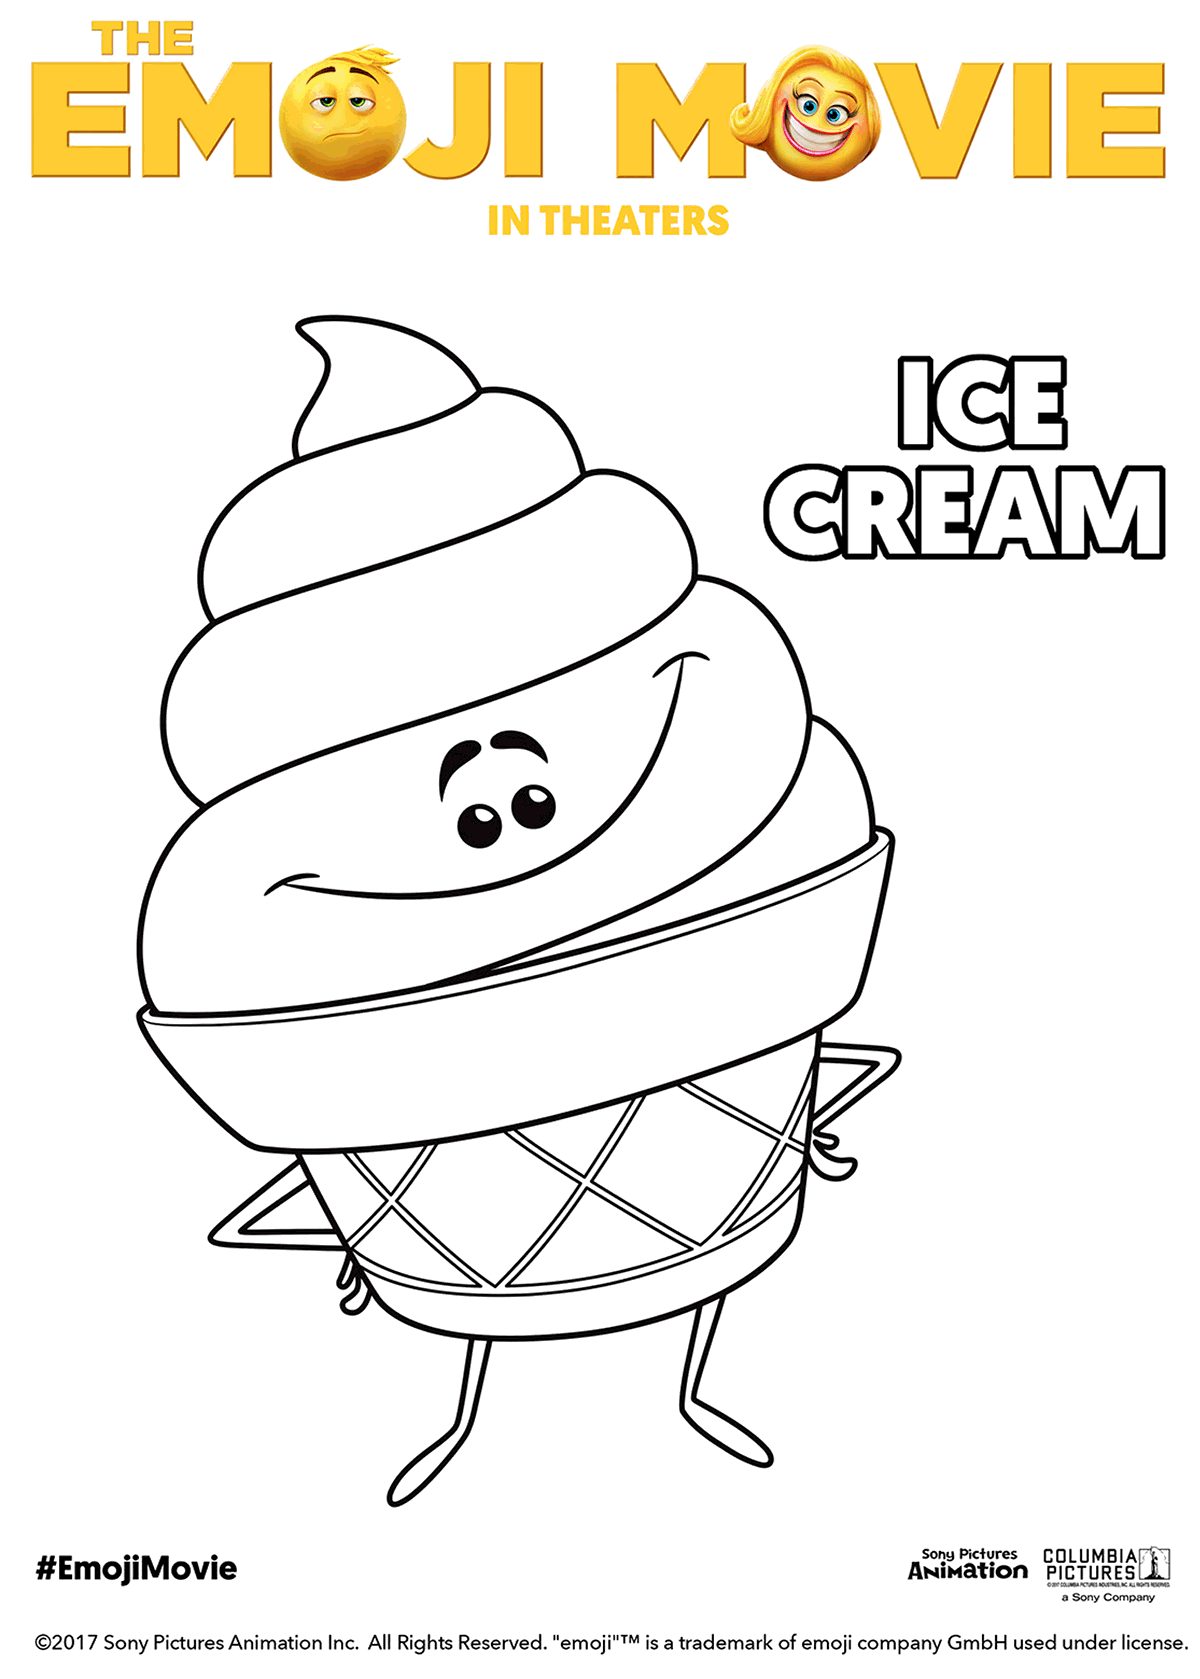 The Emoji Movie Ice Cream Coloring Pages